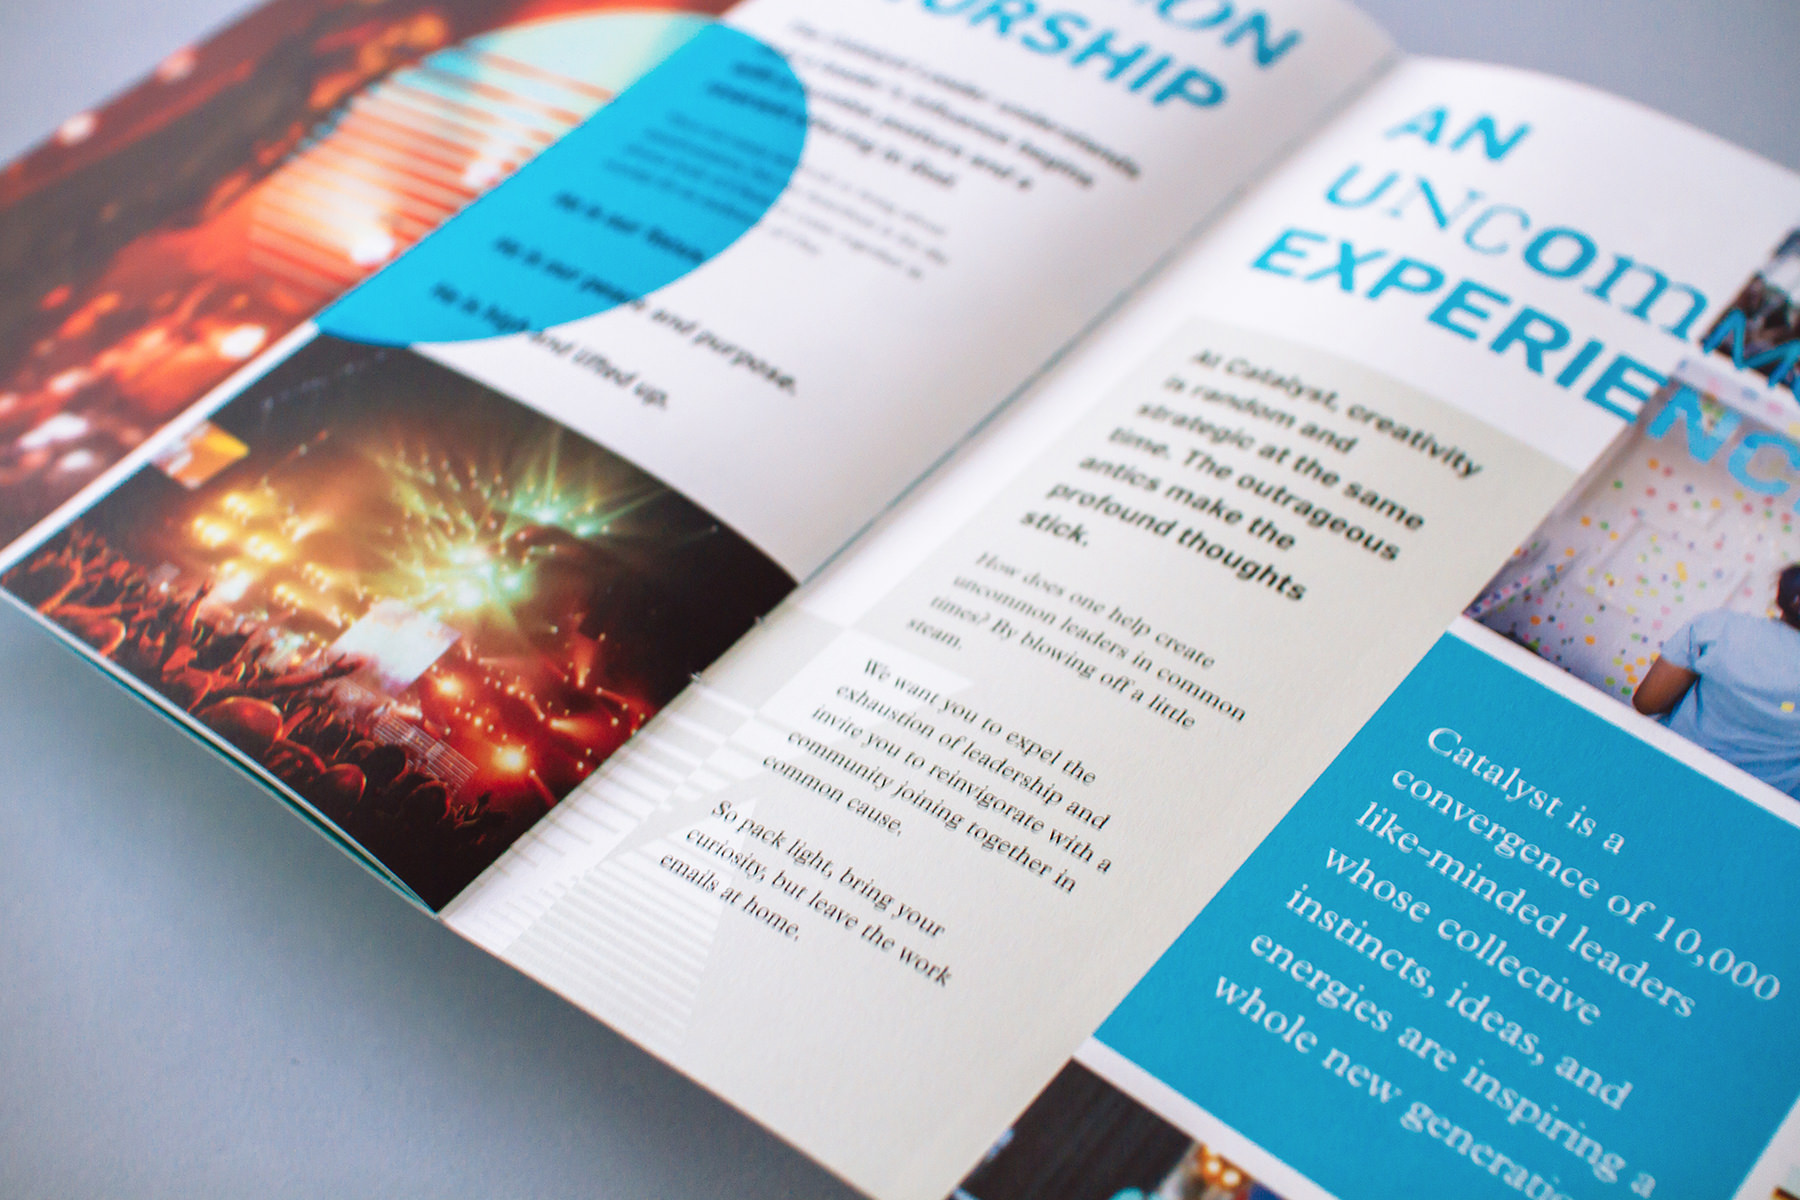 """Conference marketing brochure design """"uncommon experience"""" shows event photos and theme copywriting for introducing the new theme brand identity and promotion."""